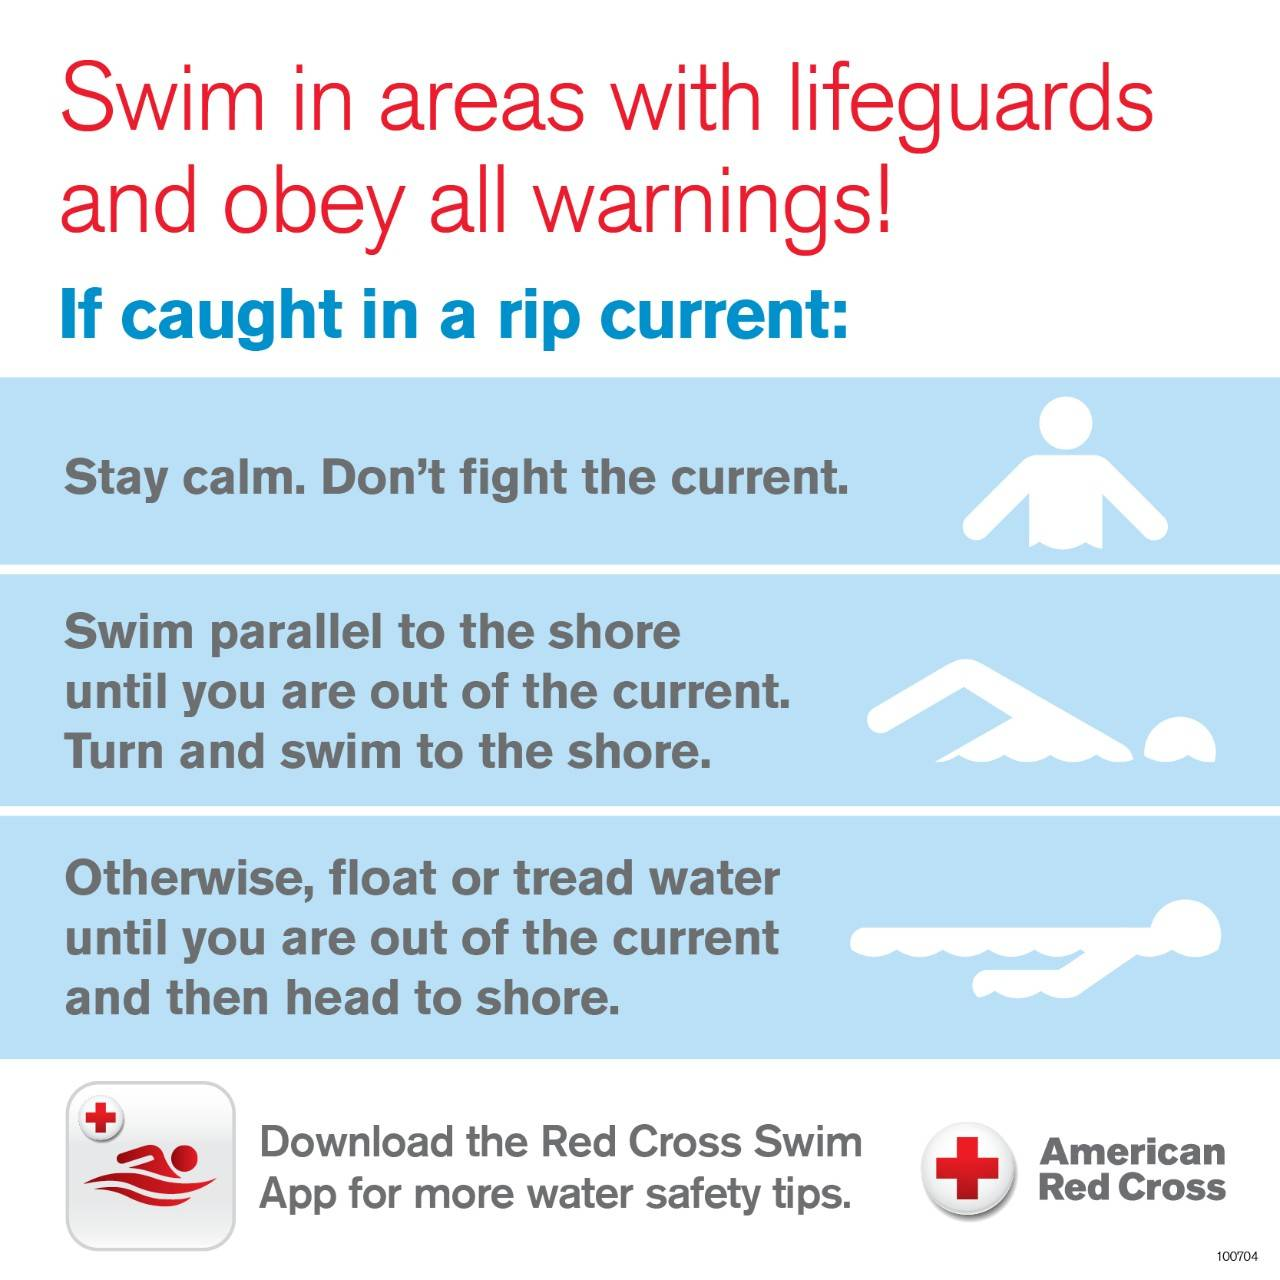 infographic for rip currents